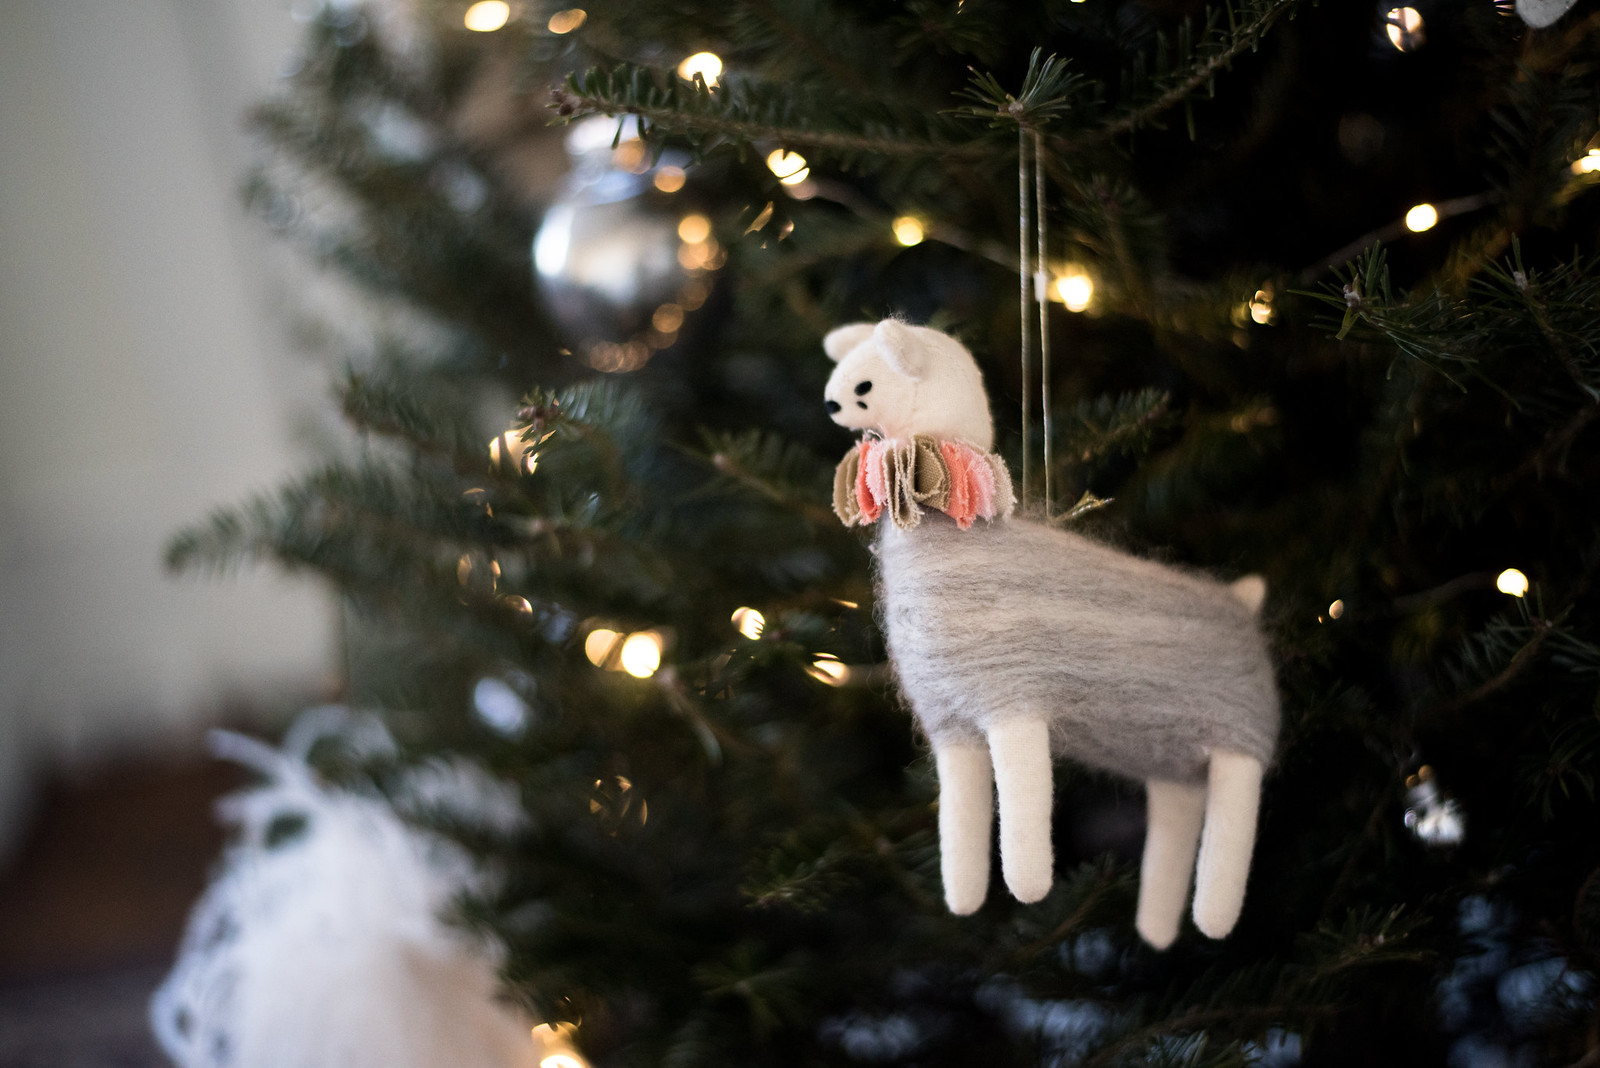 Llama Ornament on juliettelaura.blogspot.com